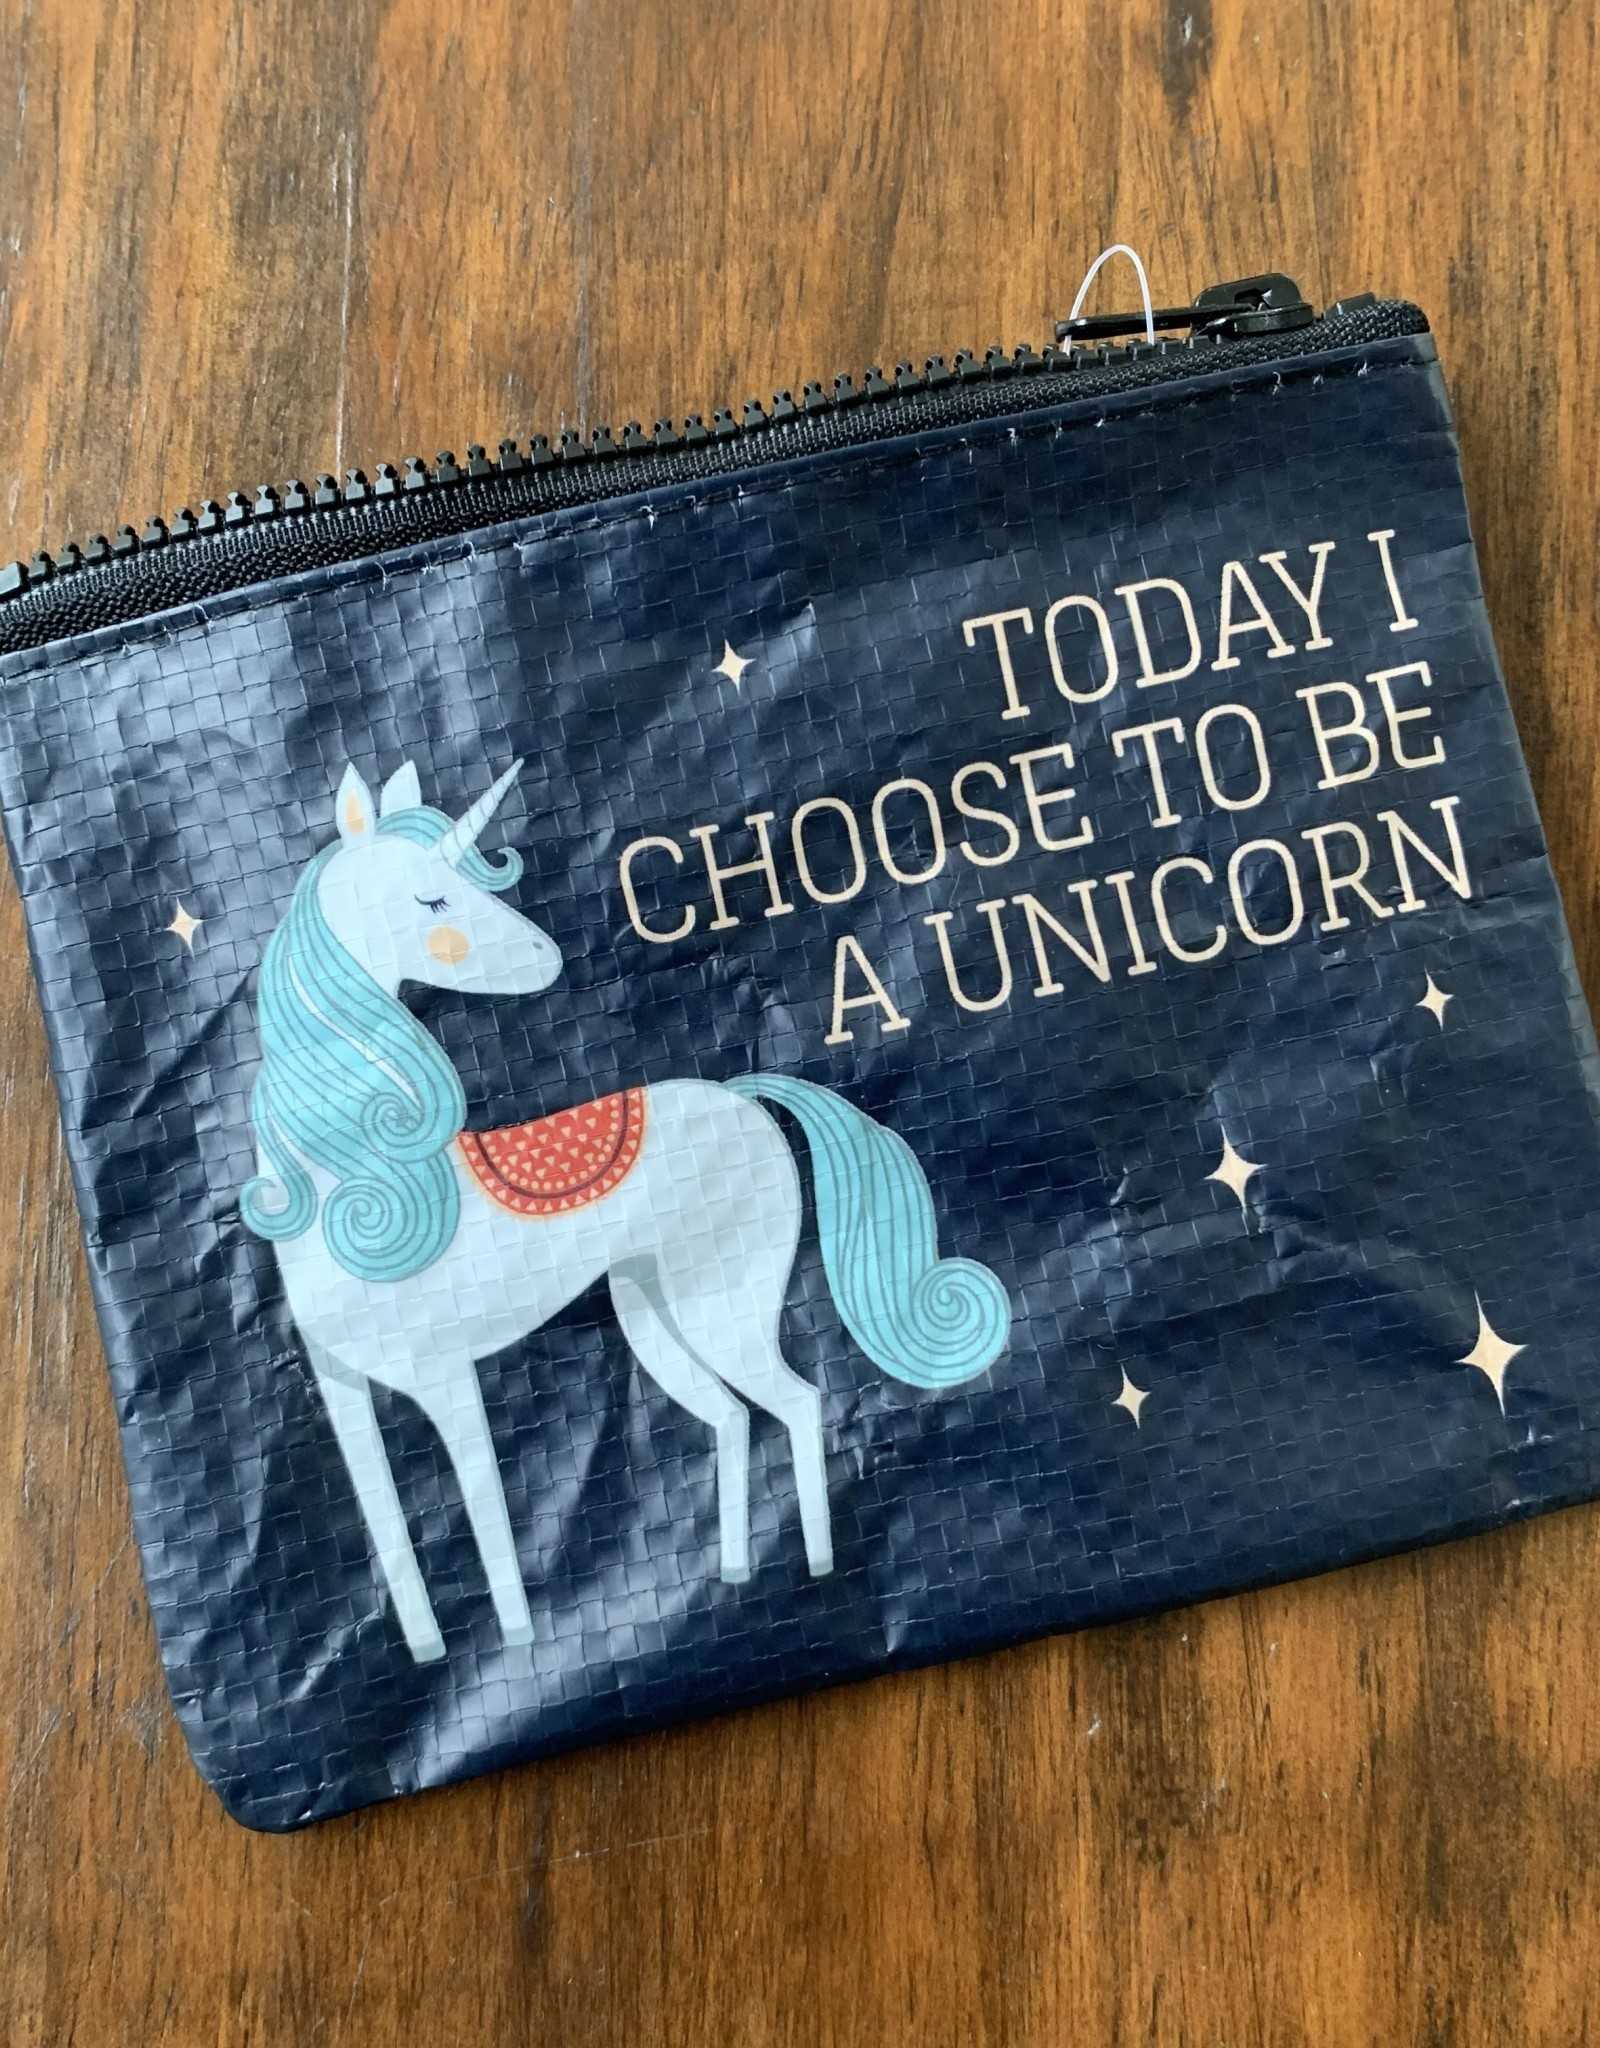 UNICORN ZIPPER WALLET